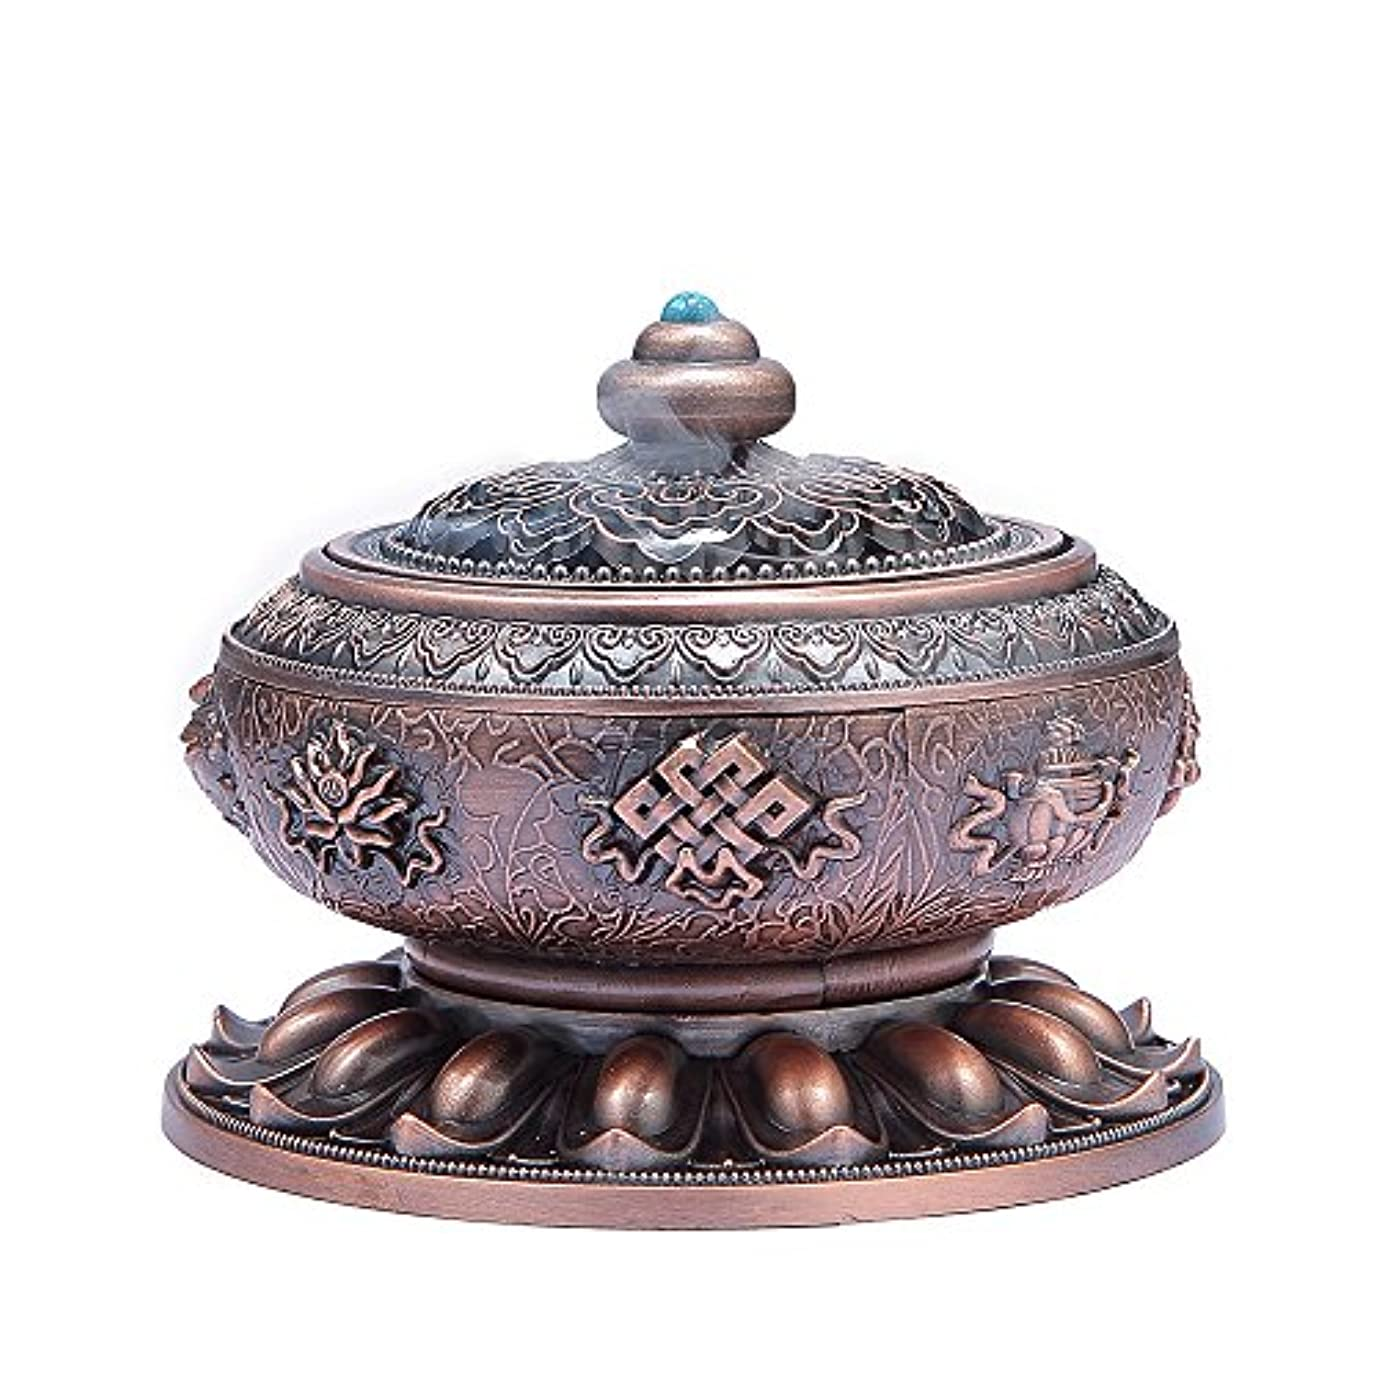 発明資源中央MEDOOSKY Large Incense Holder Burner Tibet Lotus Copper Alloy( Stick/ Cone/ Coil Incense)